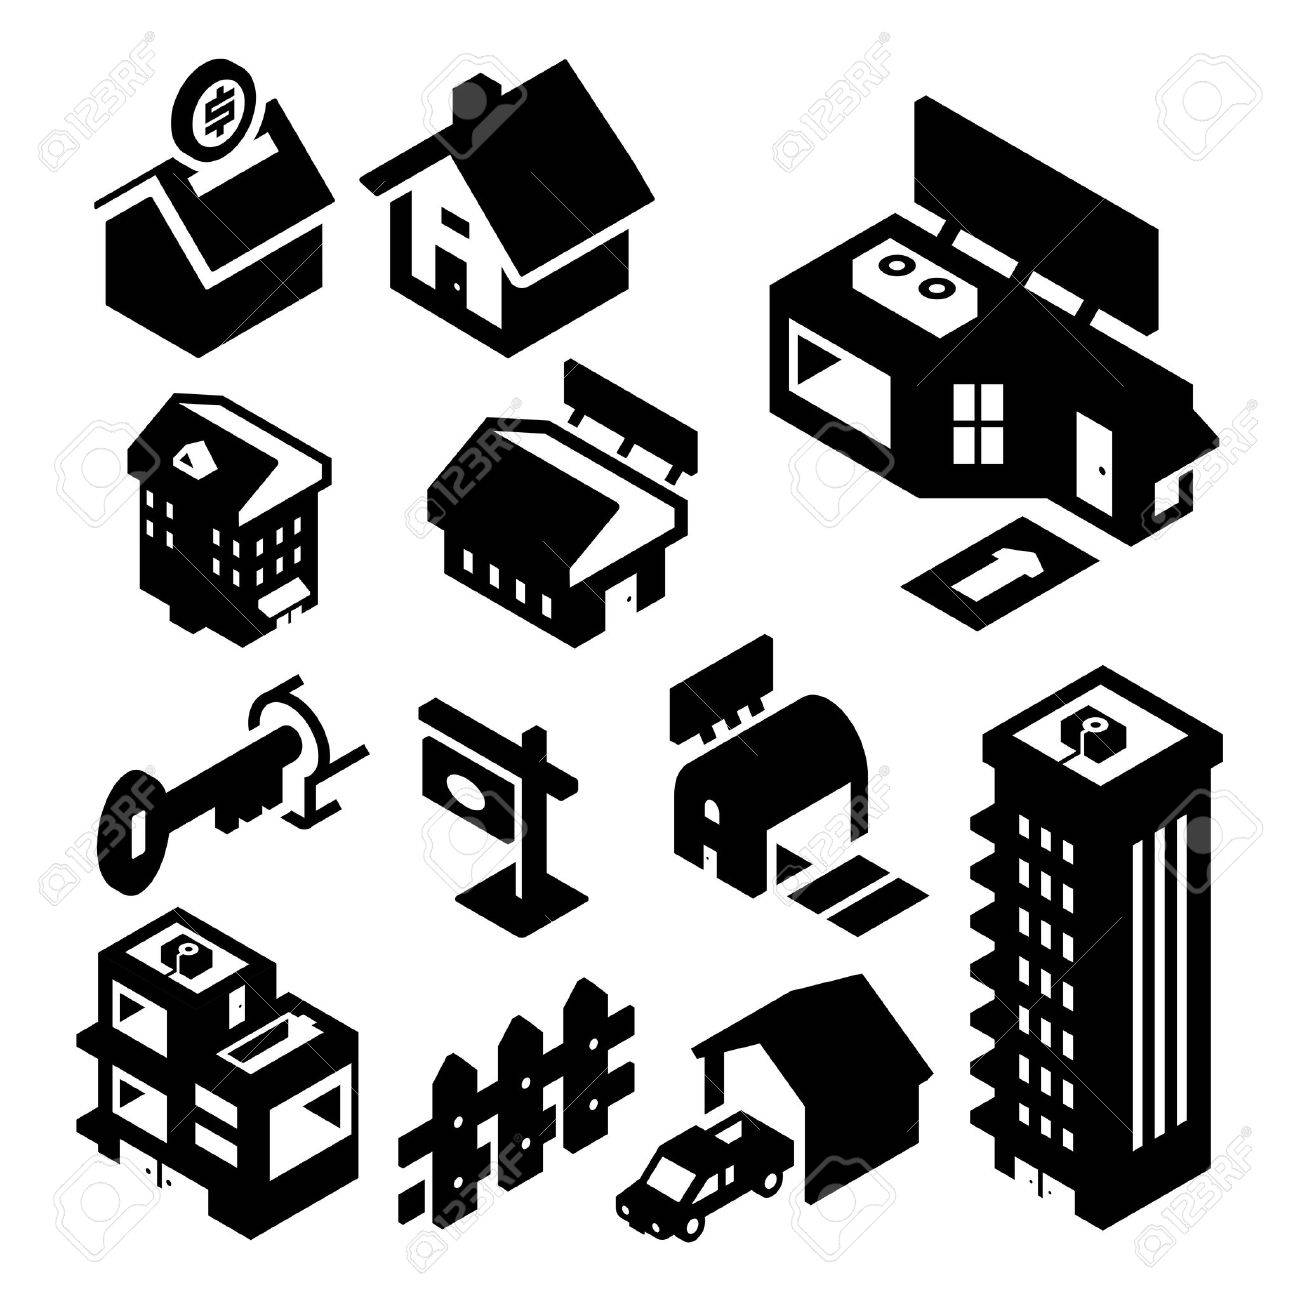 Real Estate Icons Isometric Stock Vector - 23863790